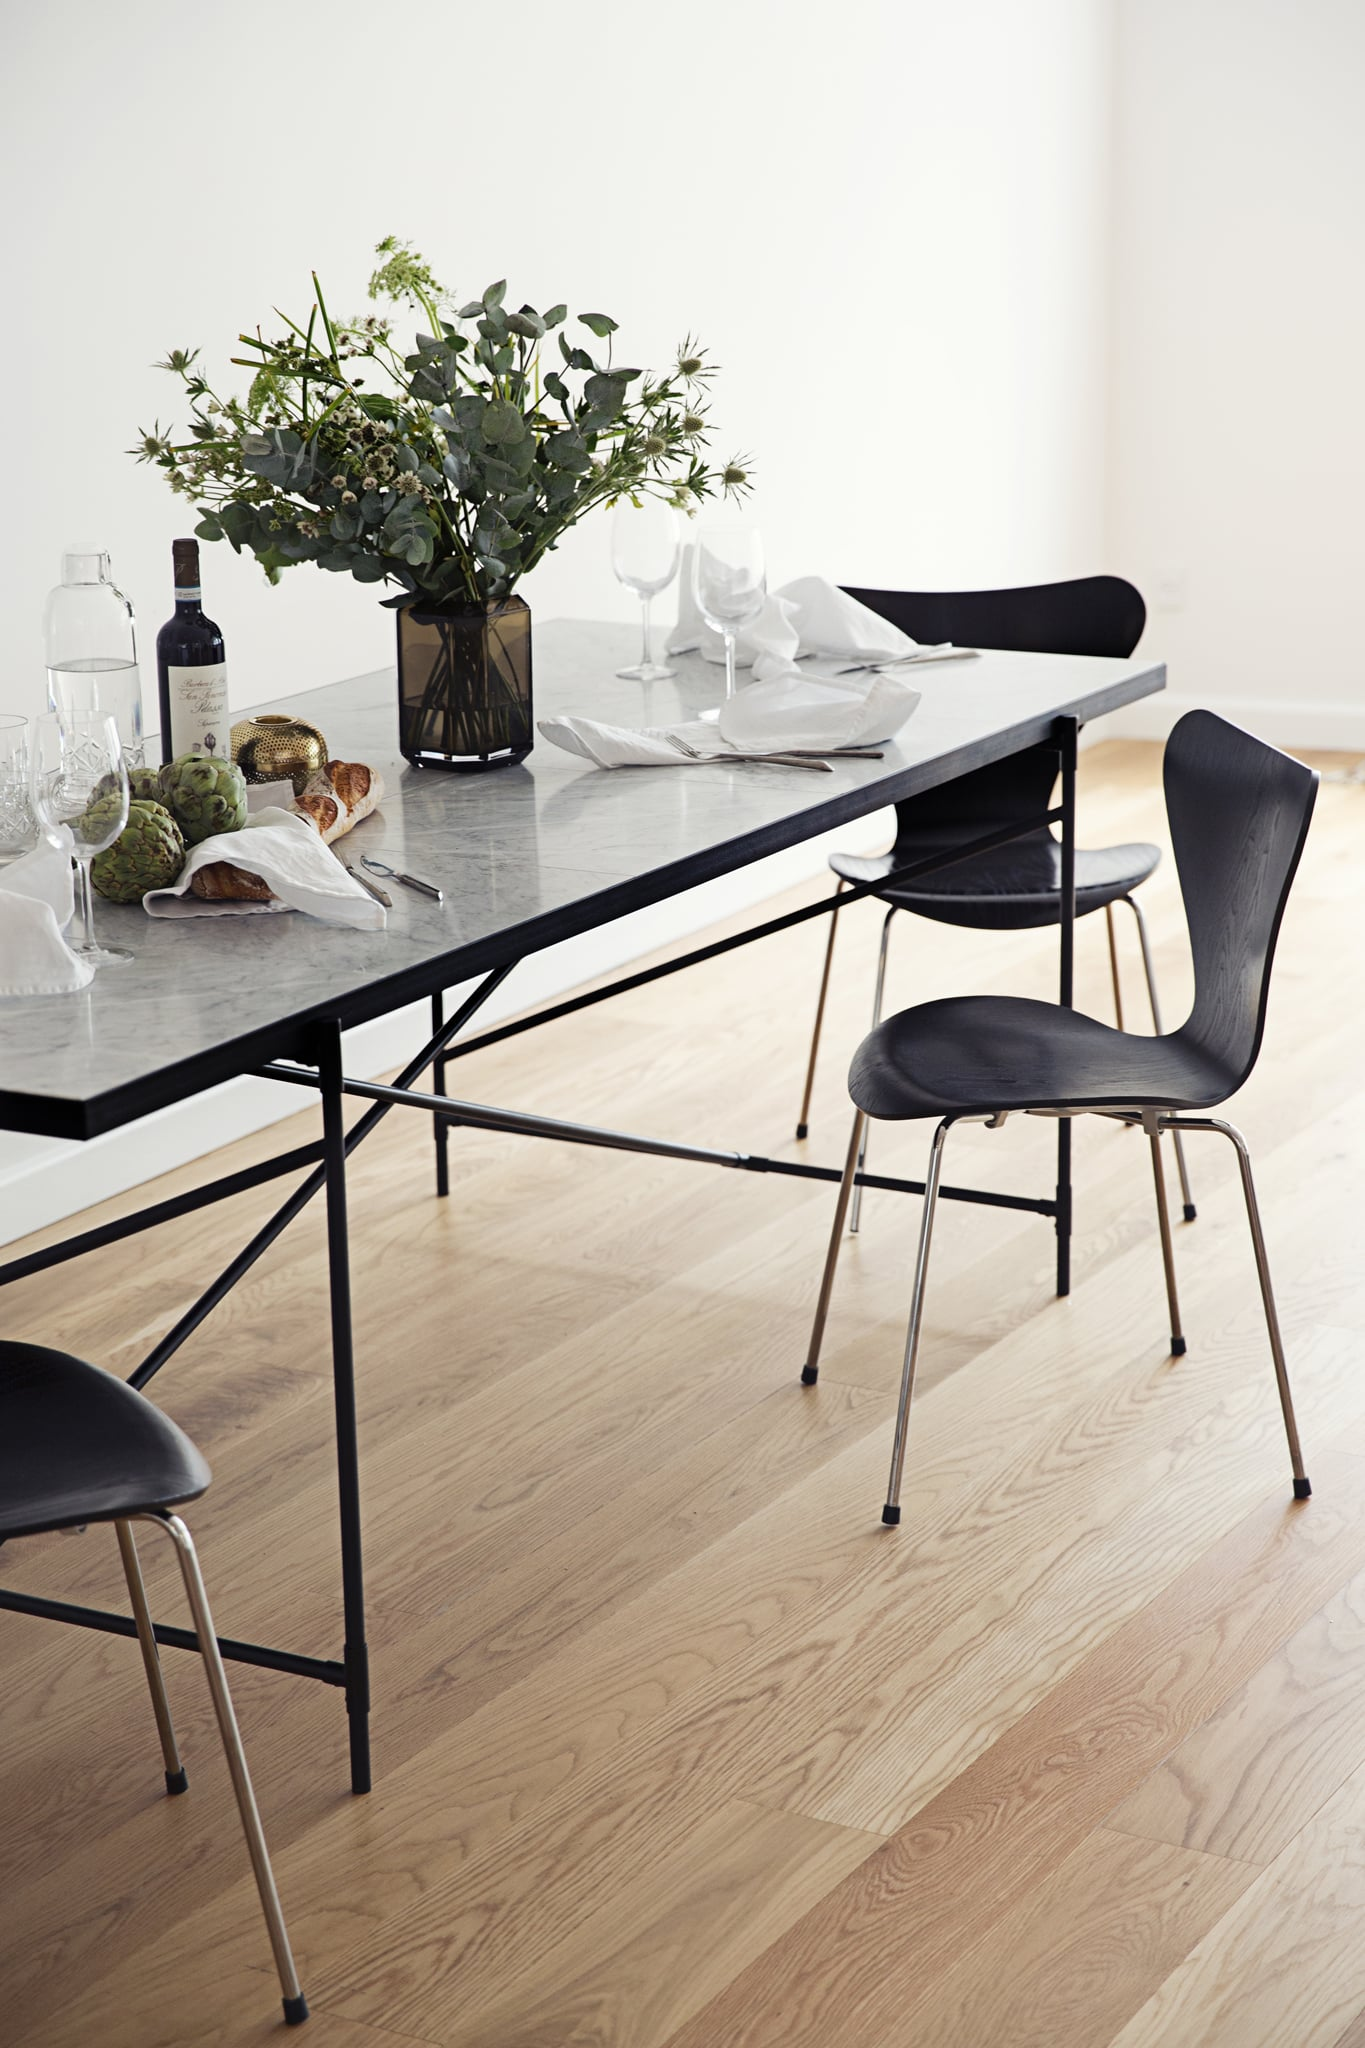 Dining-Table-230-12_large.JPG